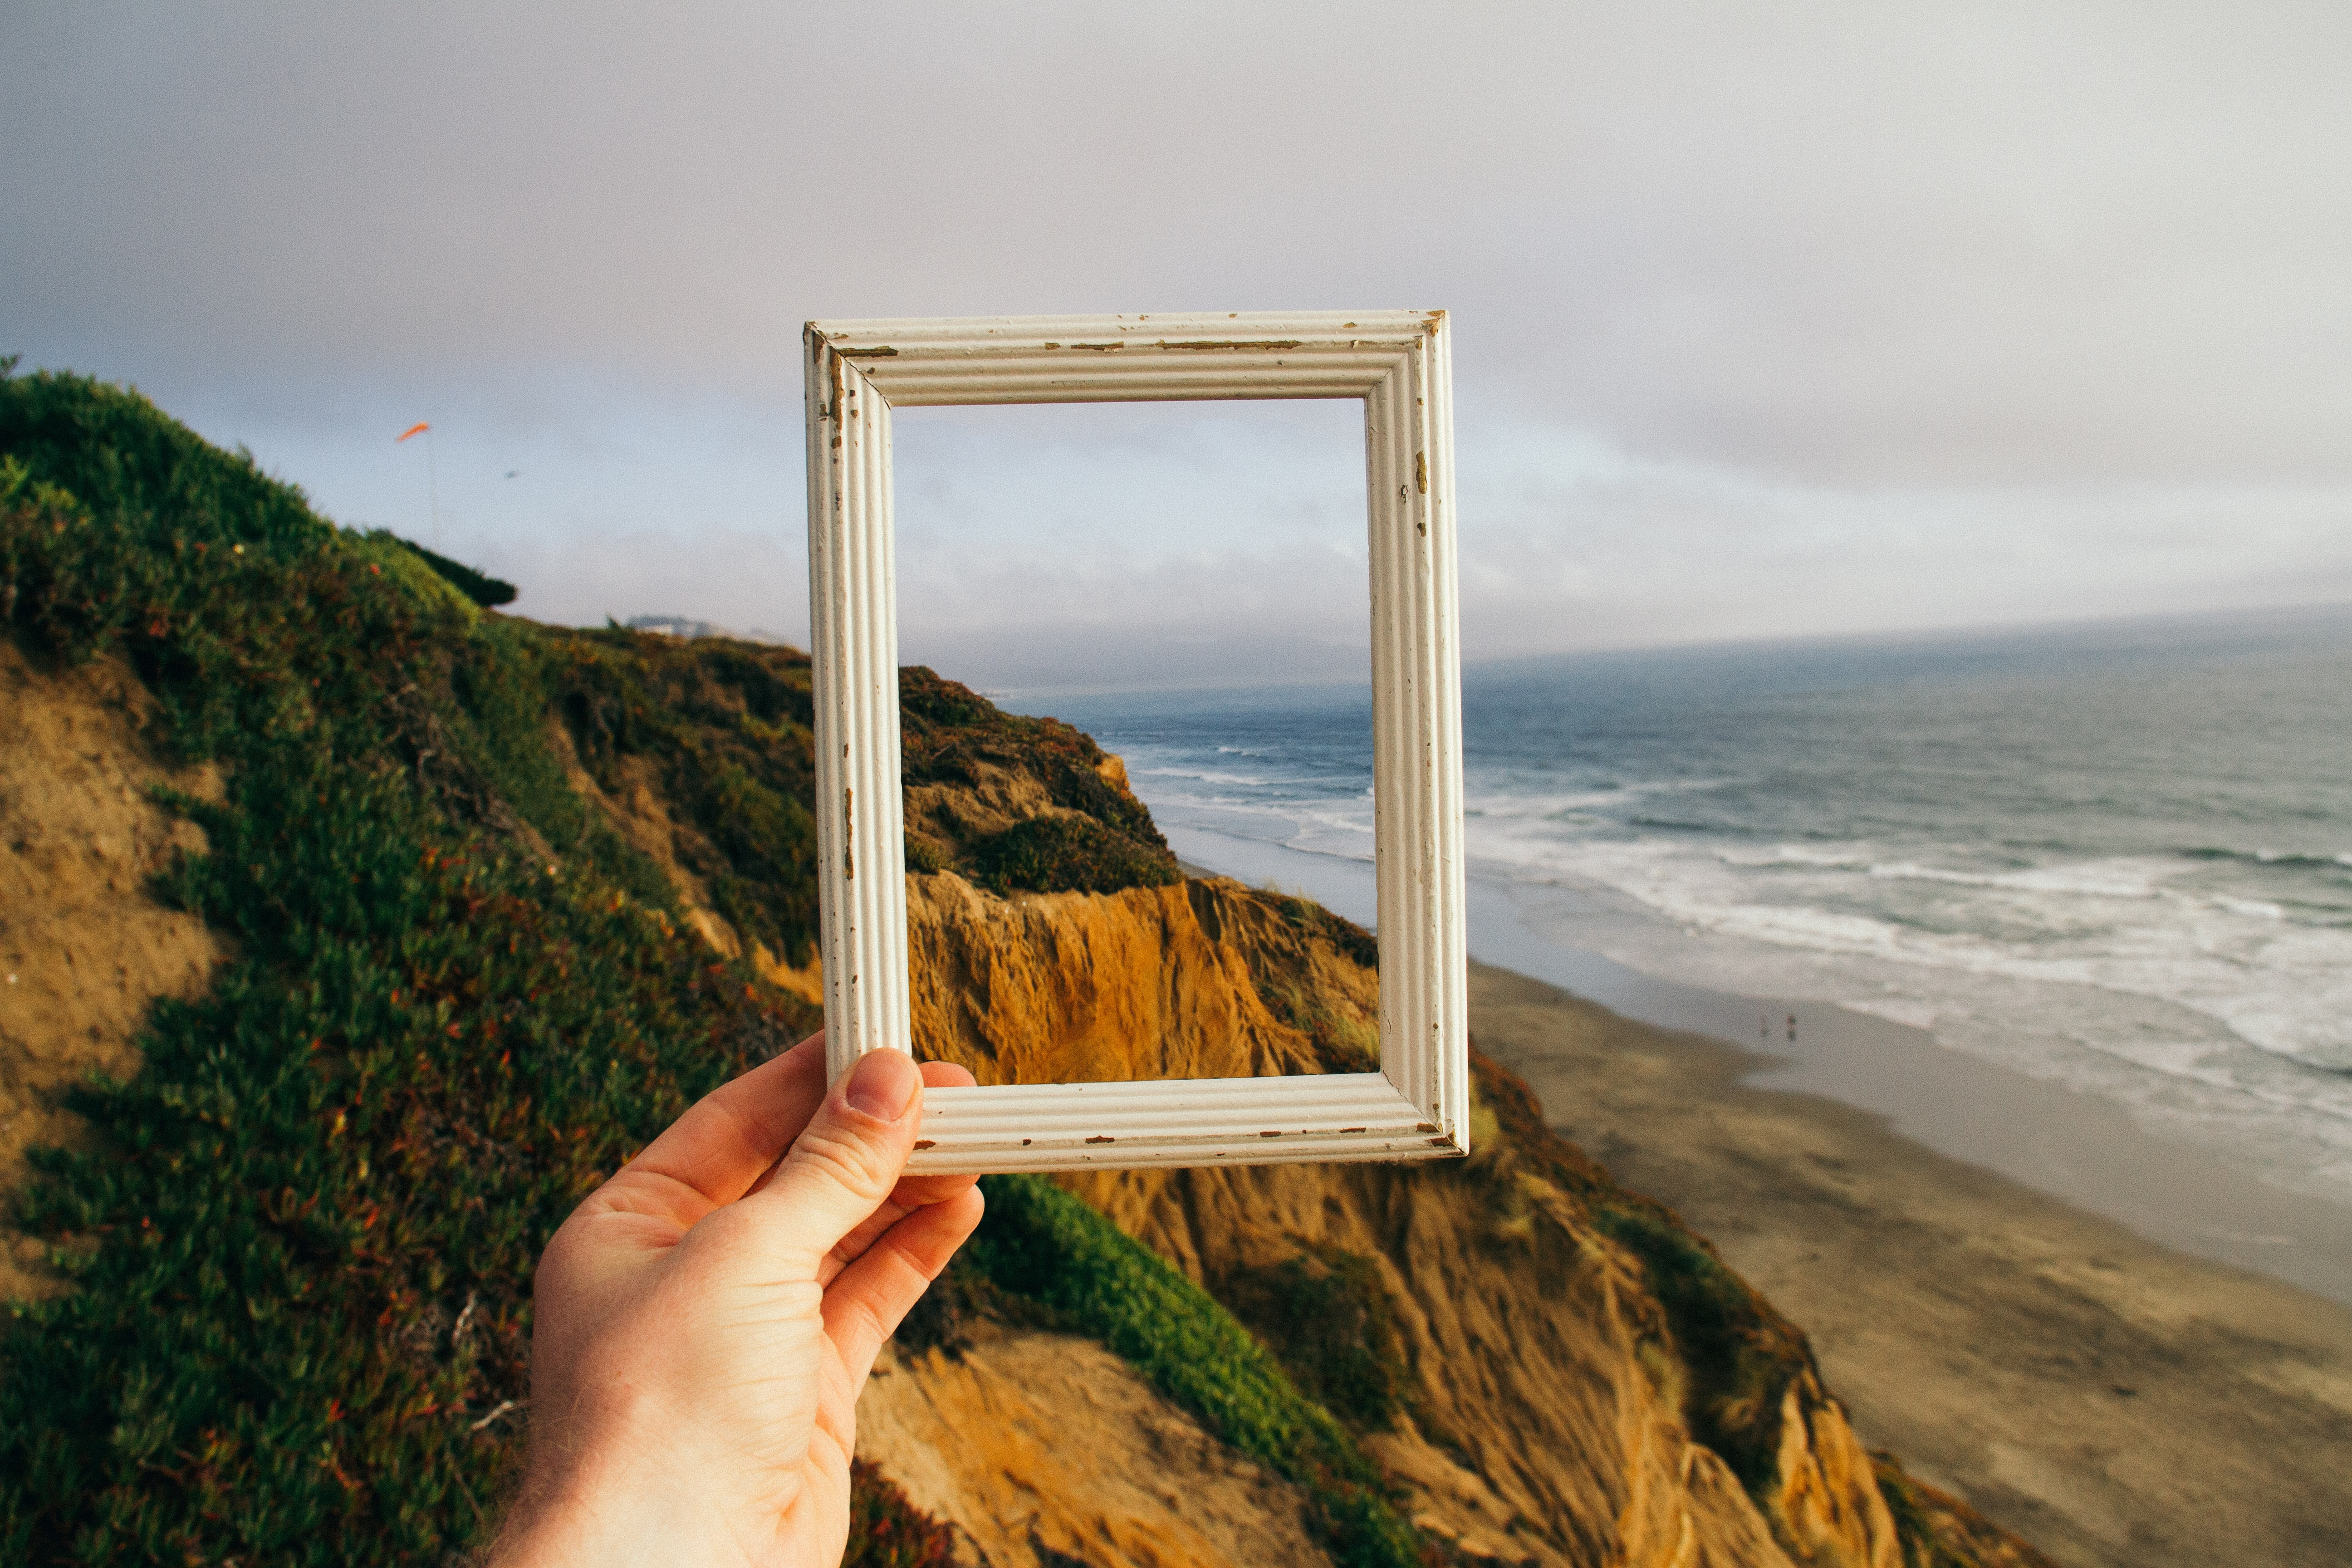 person hand holding photo frame